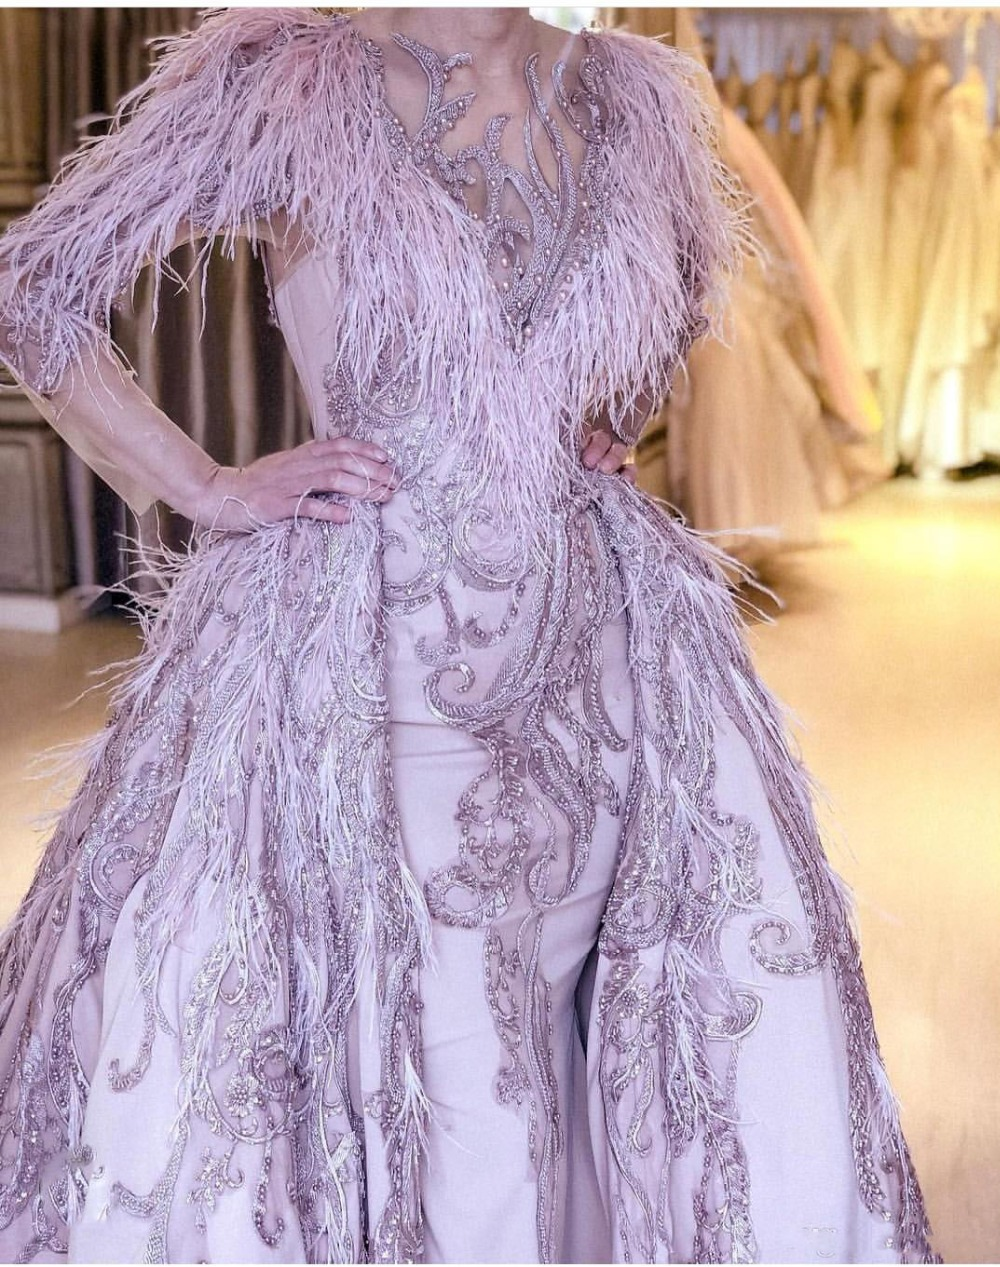 lavender-mermaid-prom-dress-with-detachable-train-2019-feather-evening-gowns-long-sleeve-overskirts-beads-embroidery-formal-plus-size-gown